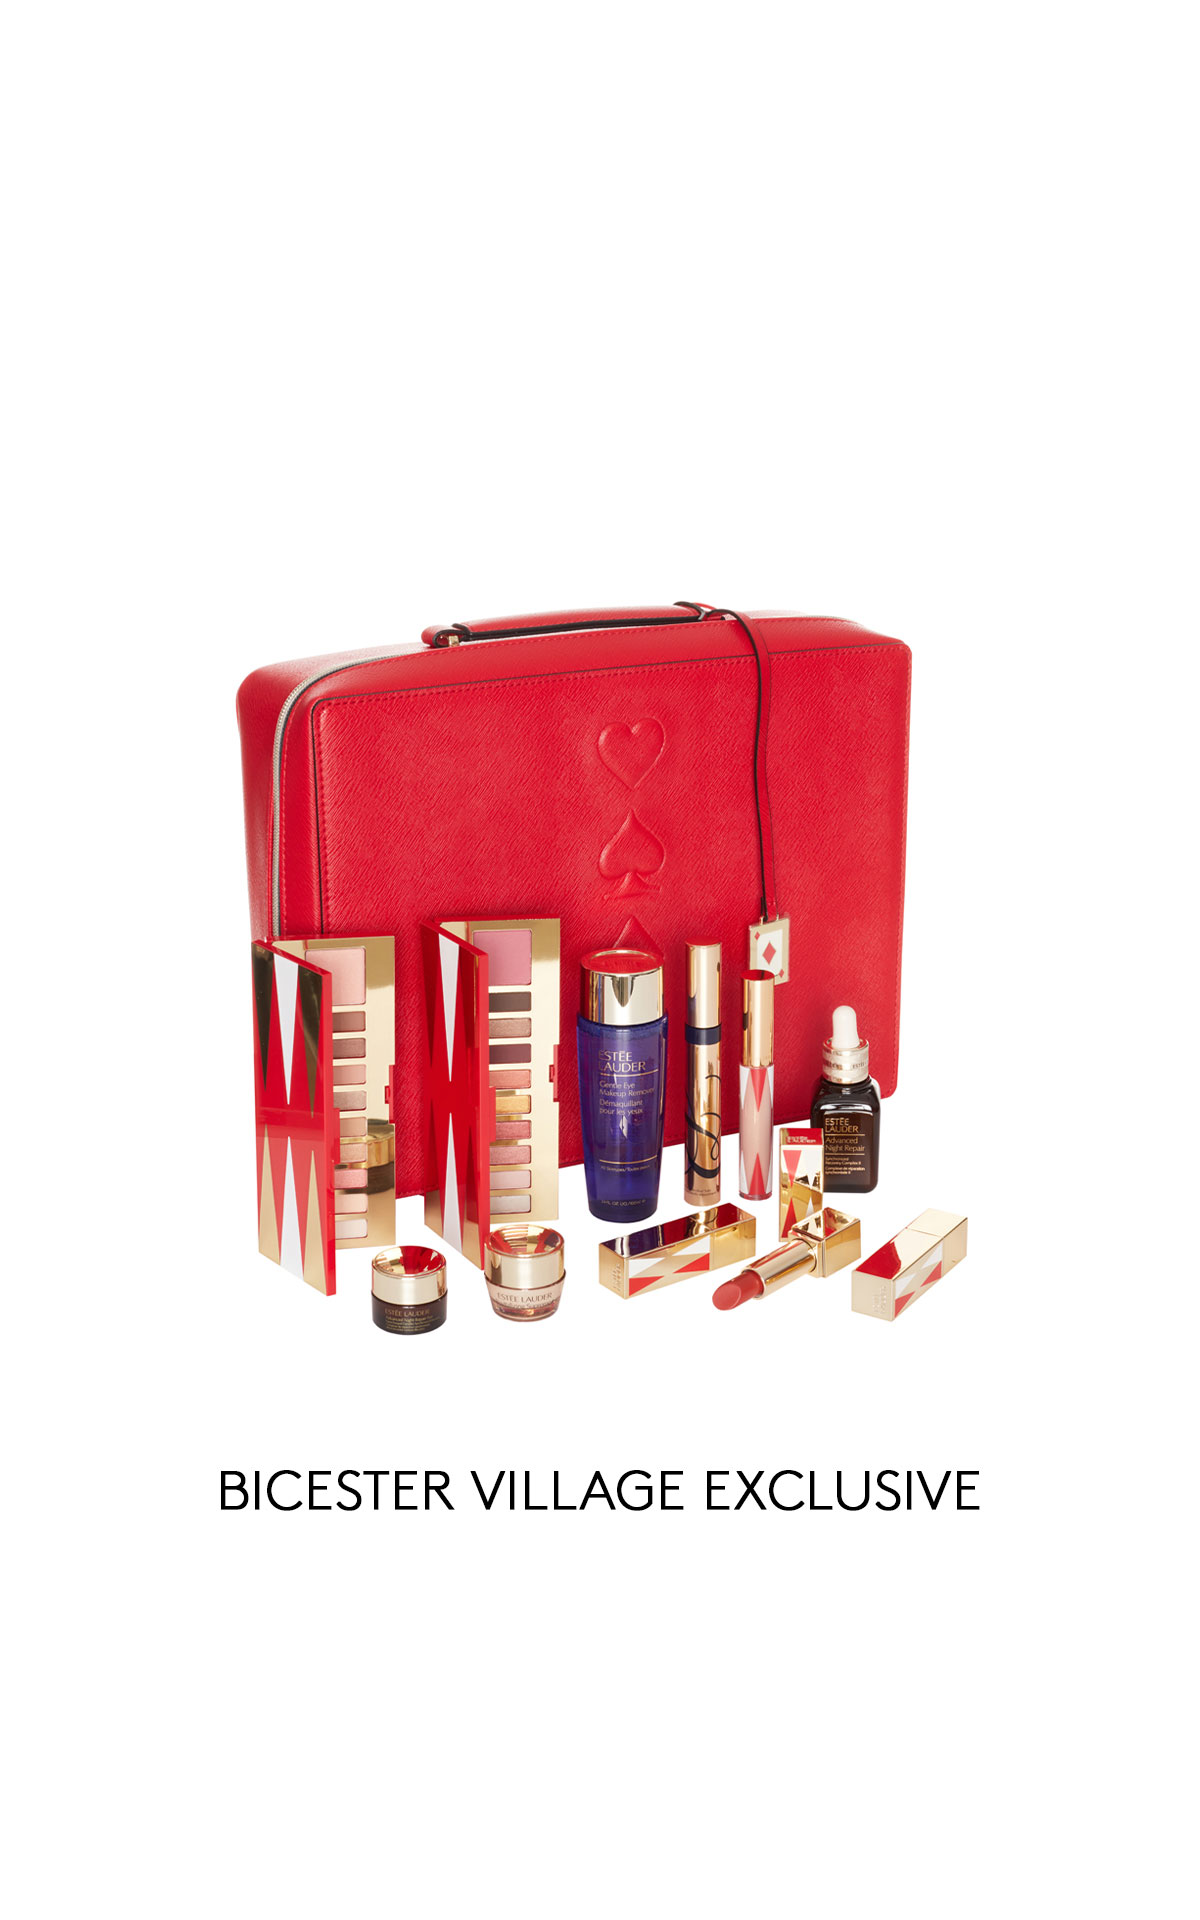 The Cosmetics Company Store Estee Lauder Christmas blockbuster from Bicester Village